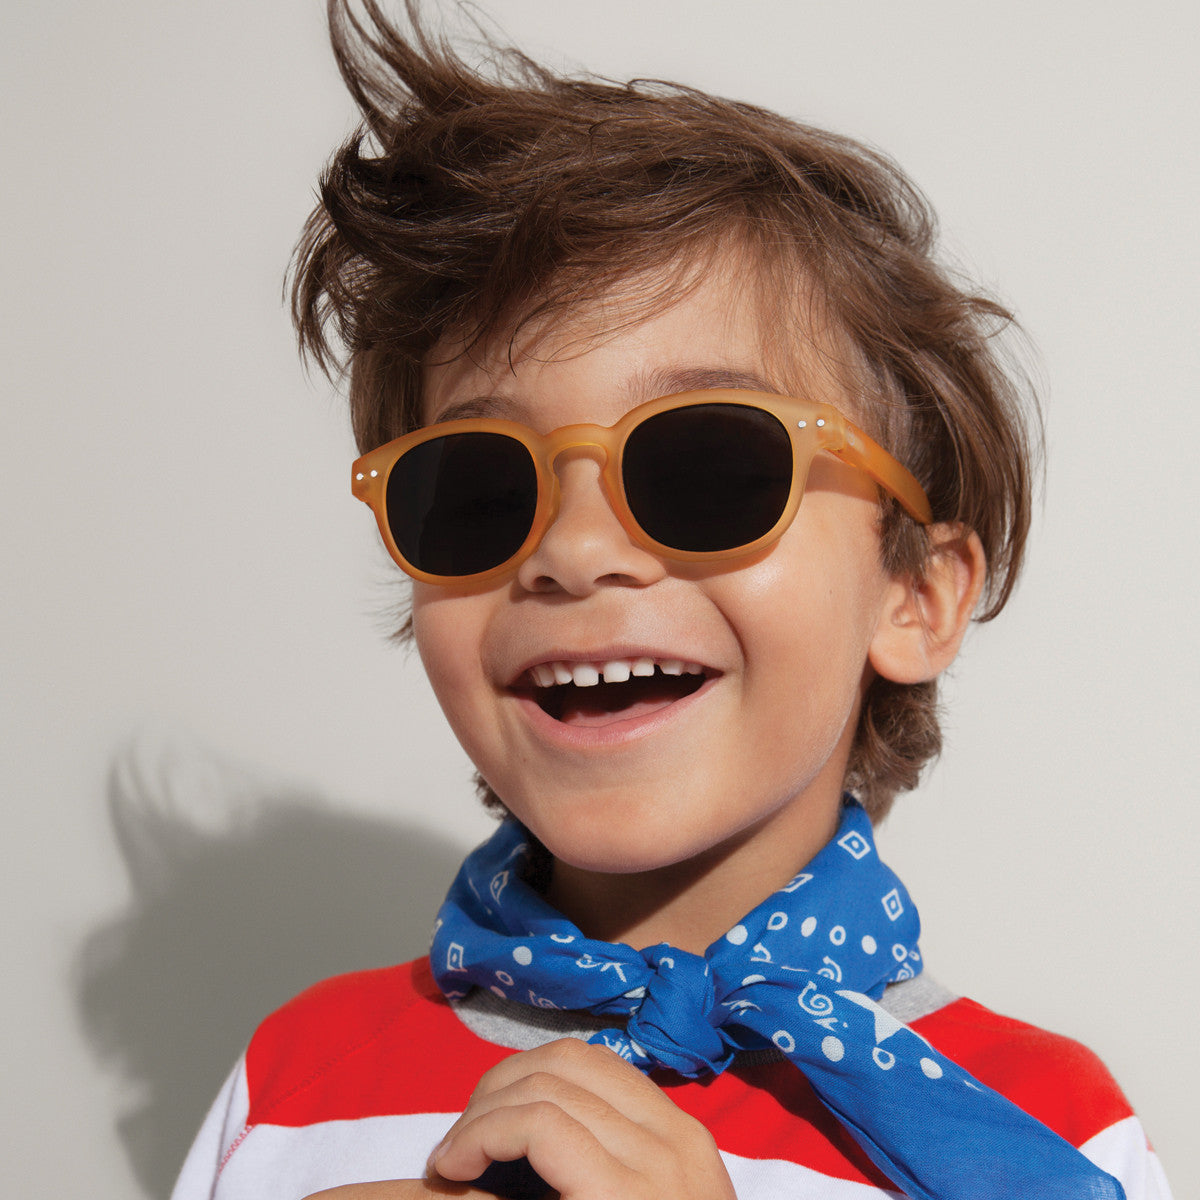 JUNIOR KIDS SUNGLASSES / 3-10 YEARS / STYLE C / NAVY BLUE